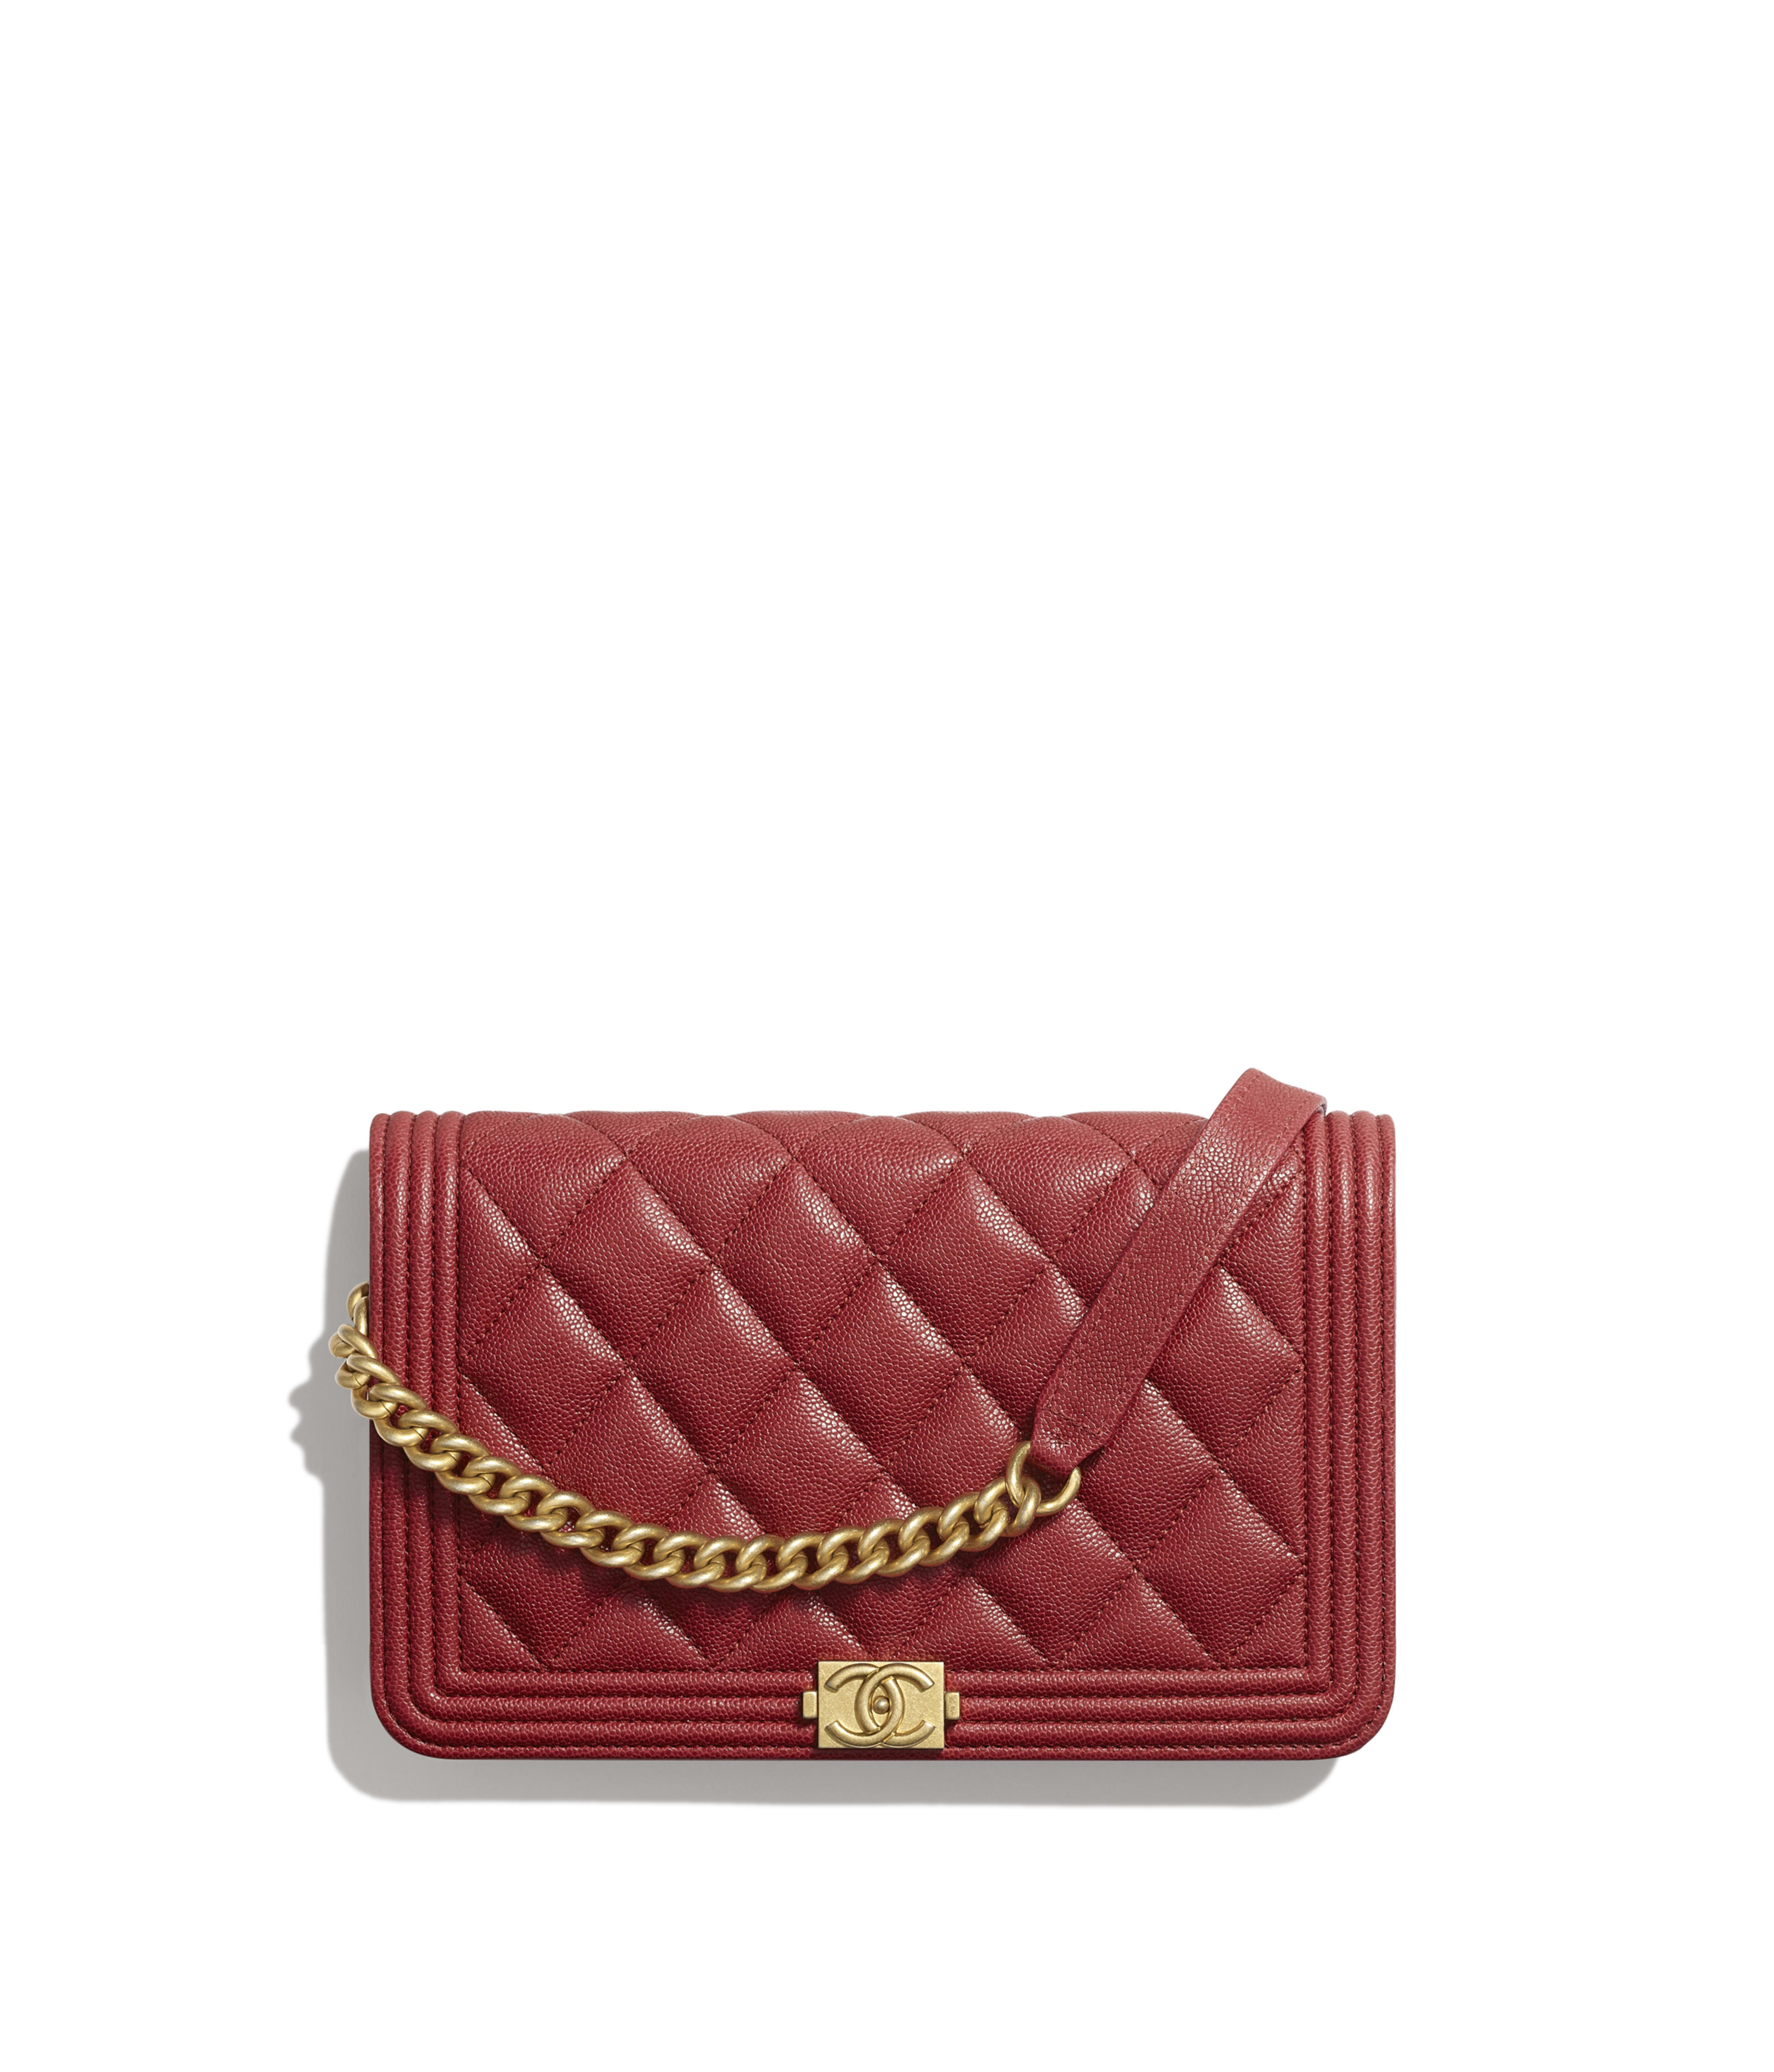 c15d3b55f BOY CHANEL Wallet on Chain Grained Calfskin & Gold-Tone Metal, Red Ref.  A81969Y83621N4711